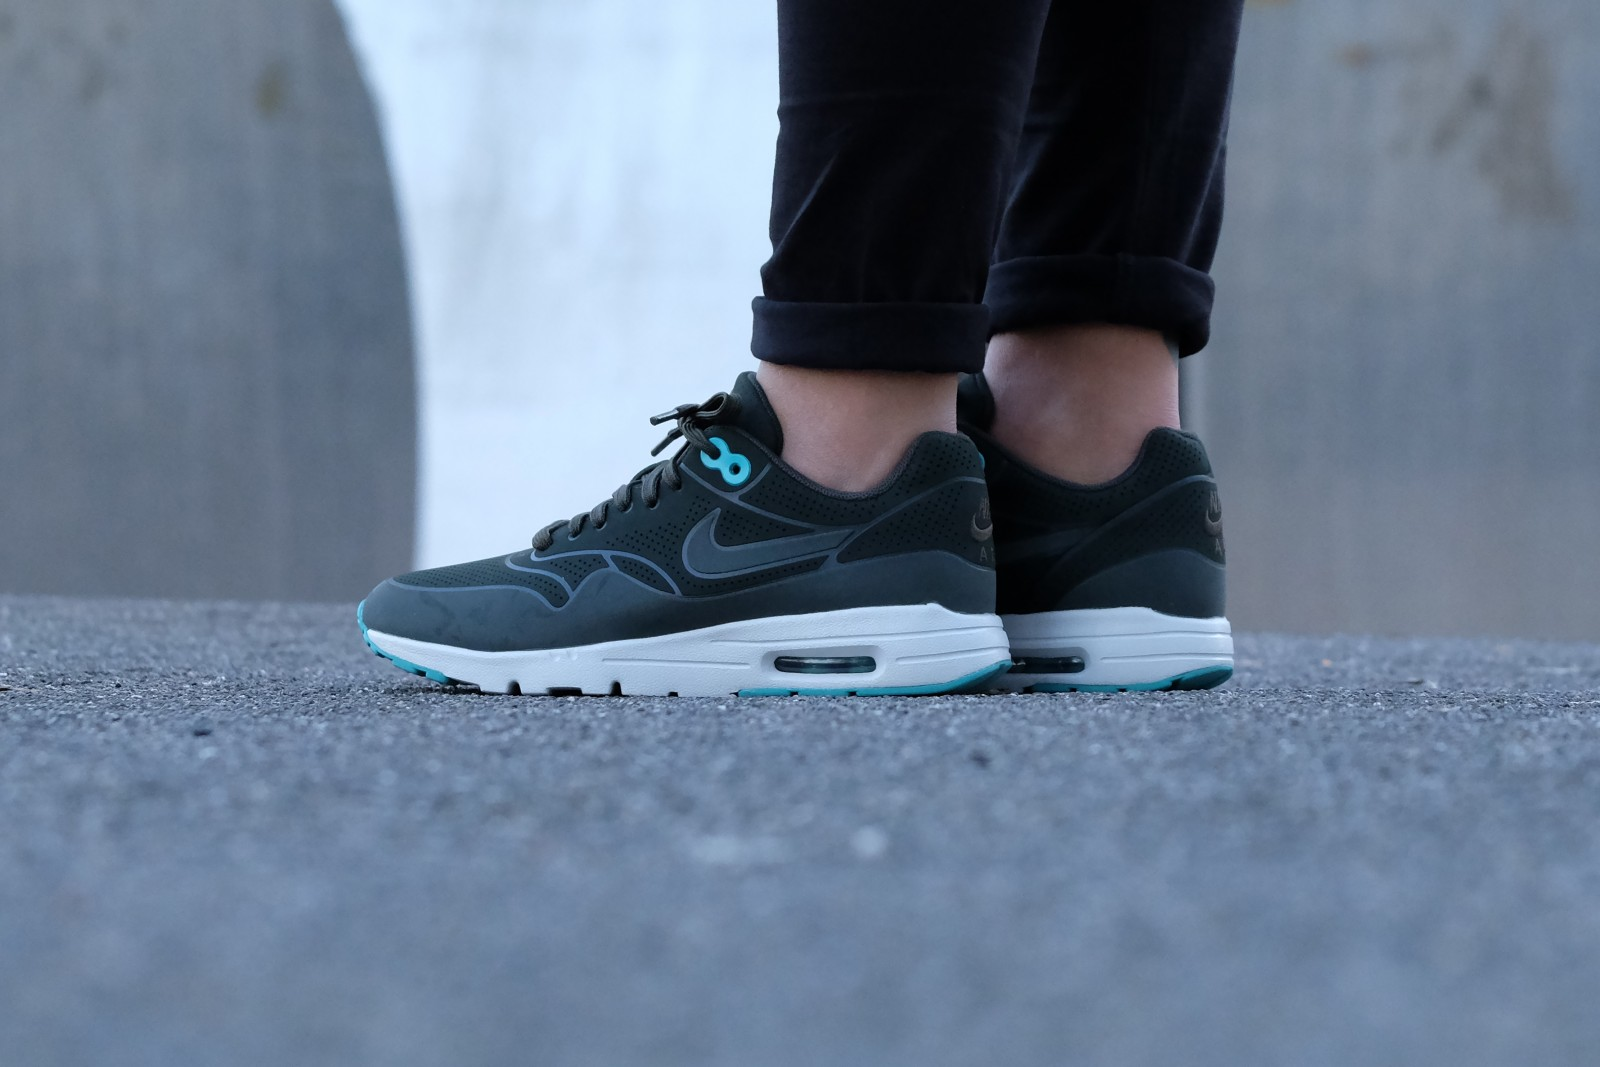 Nike Air Max 1 Ultra Moire Sequoia Washed Teal 704995 304